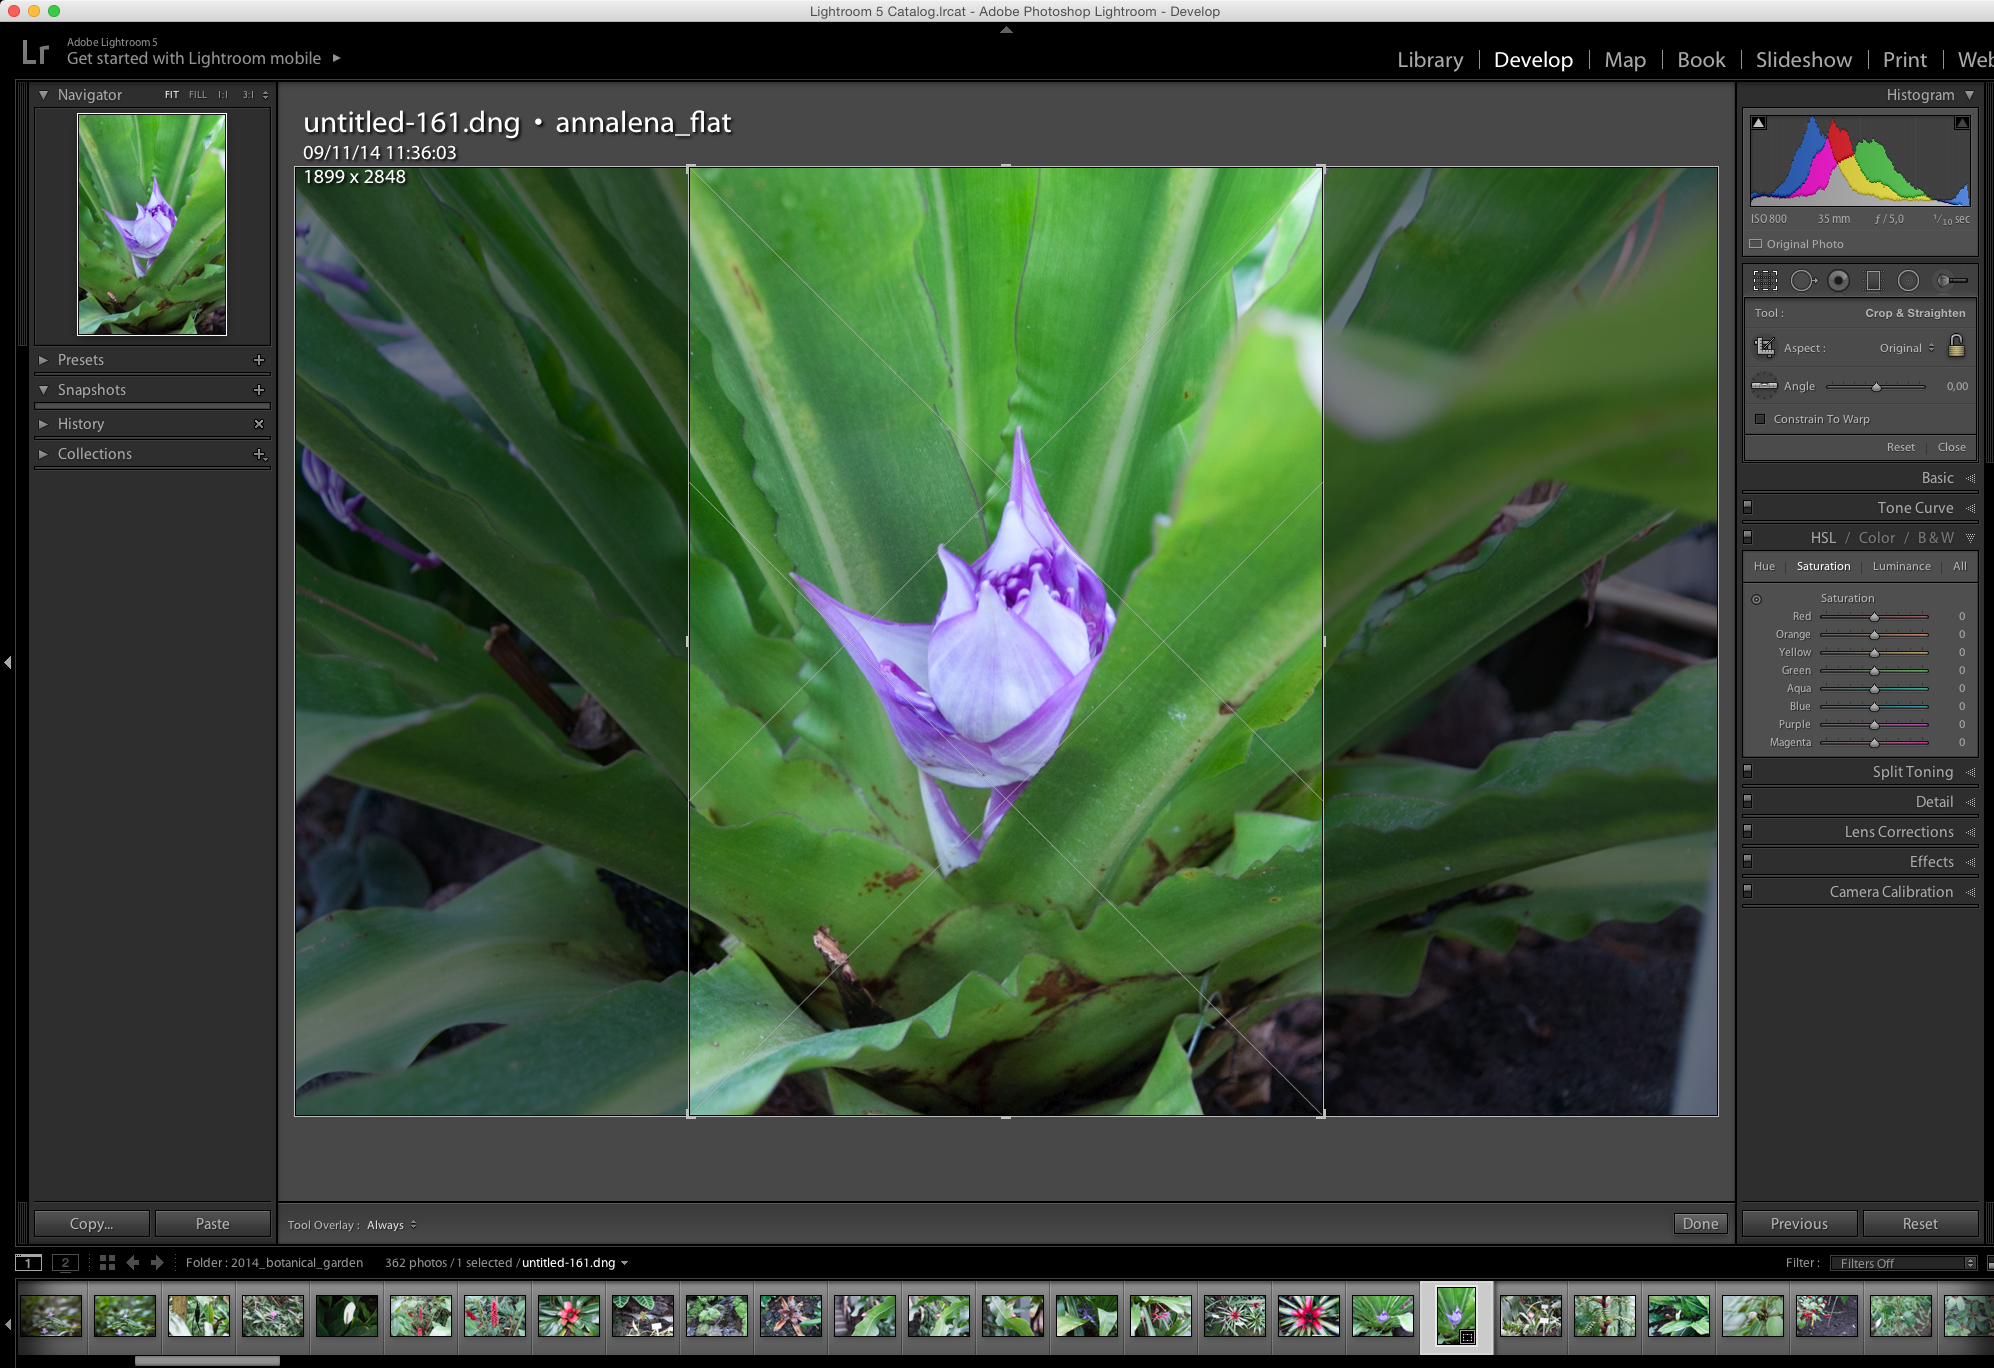 lightroom QuickTipp